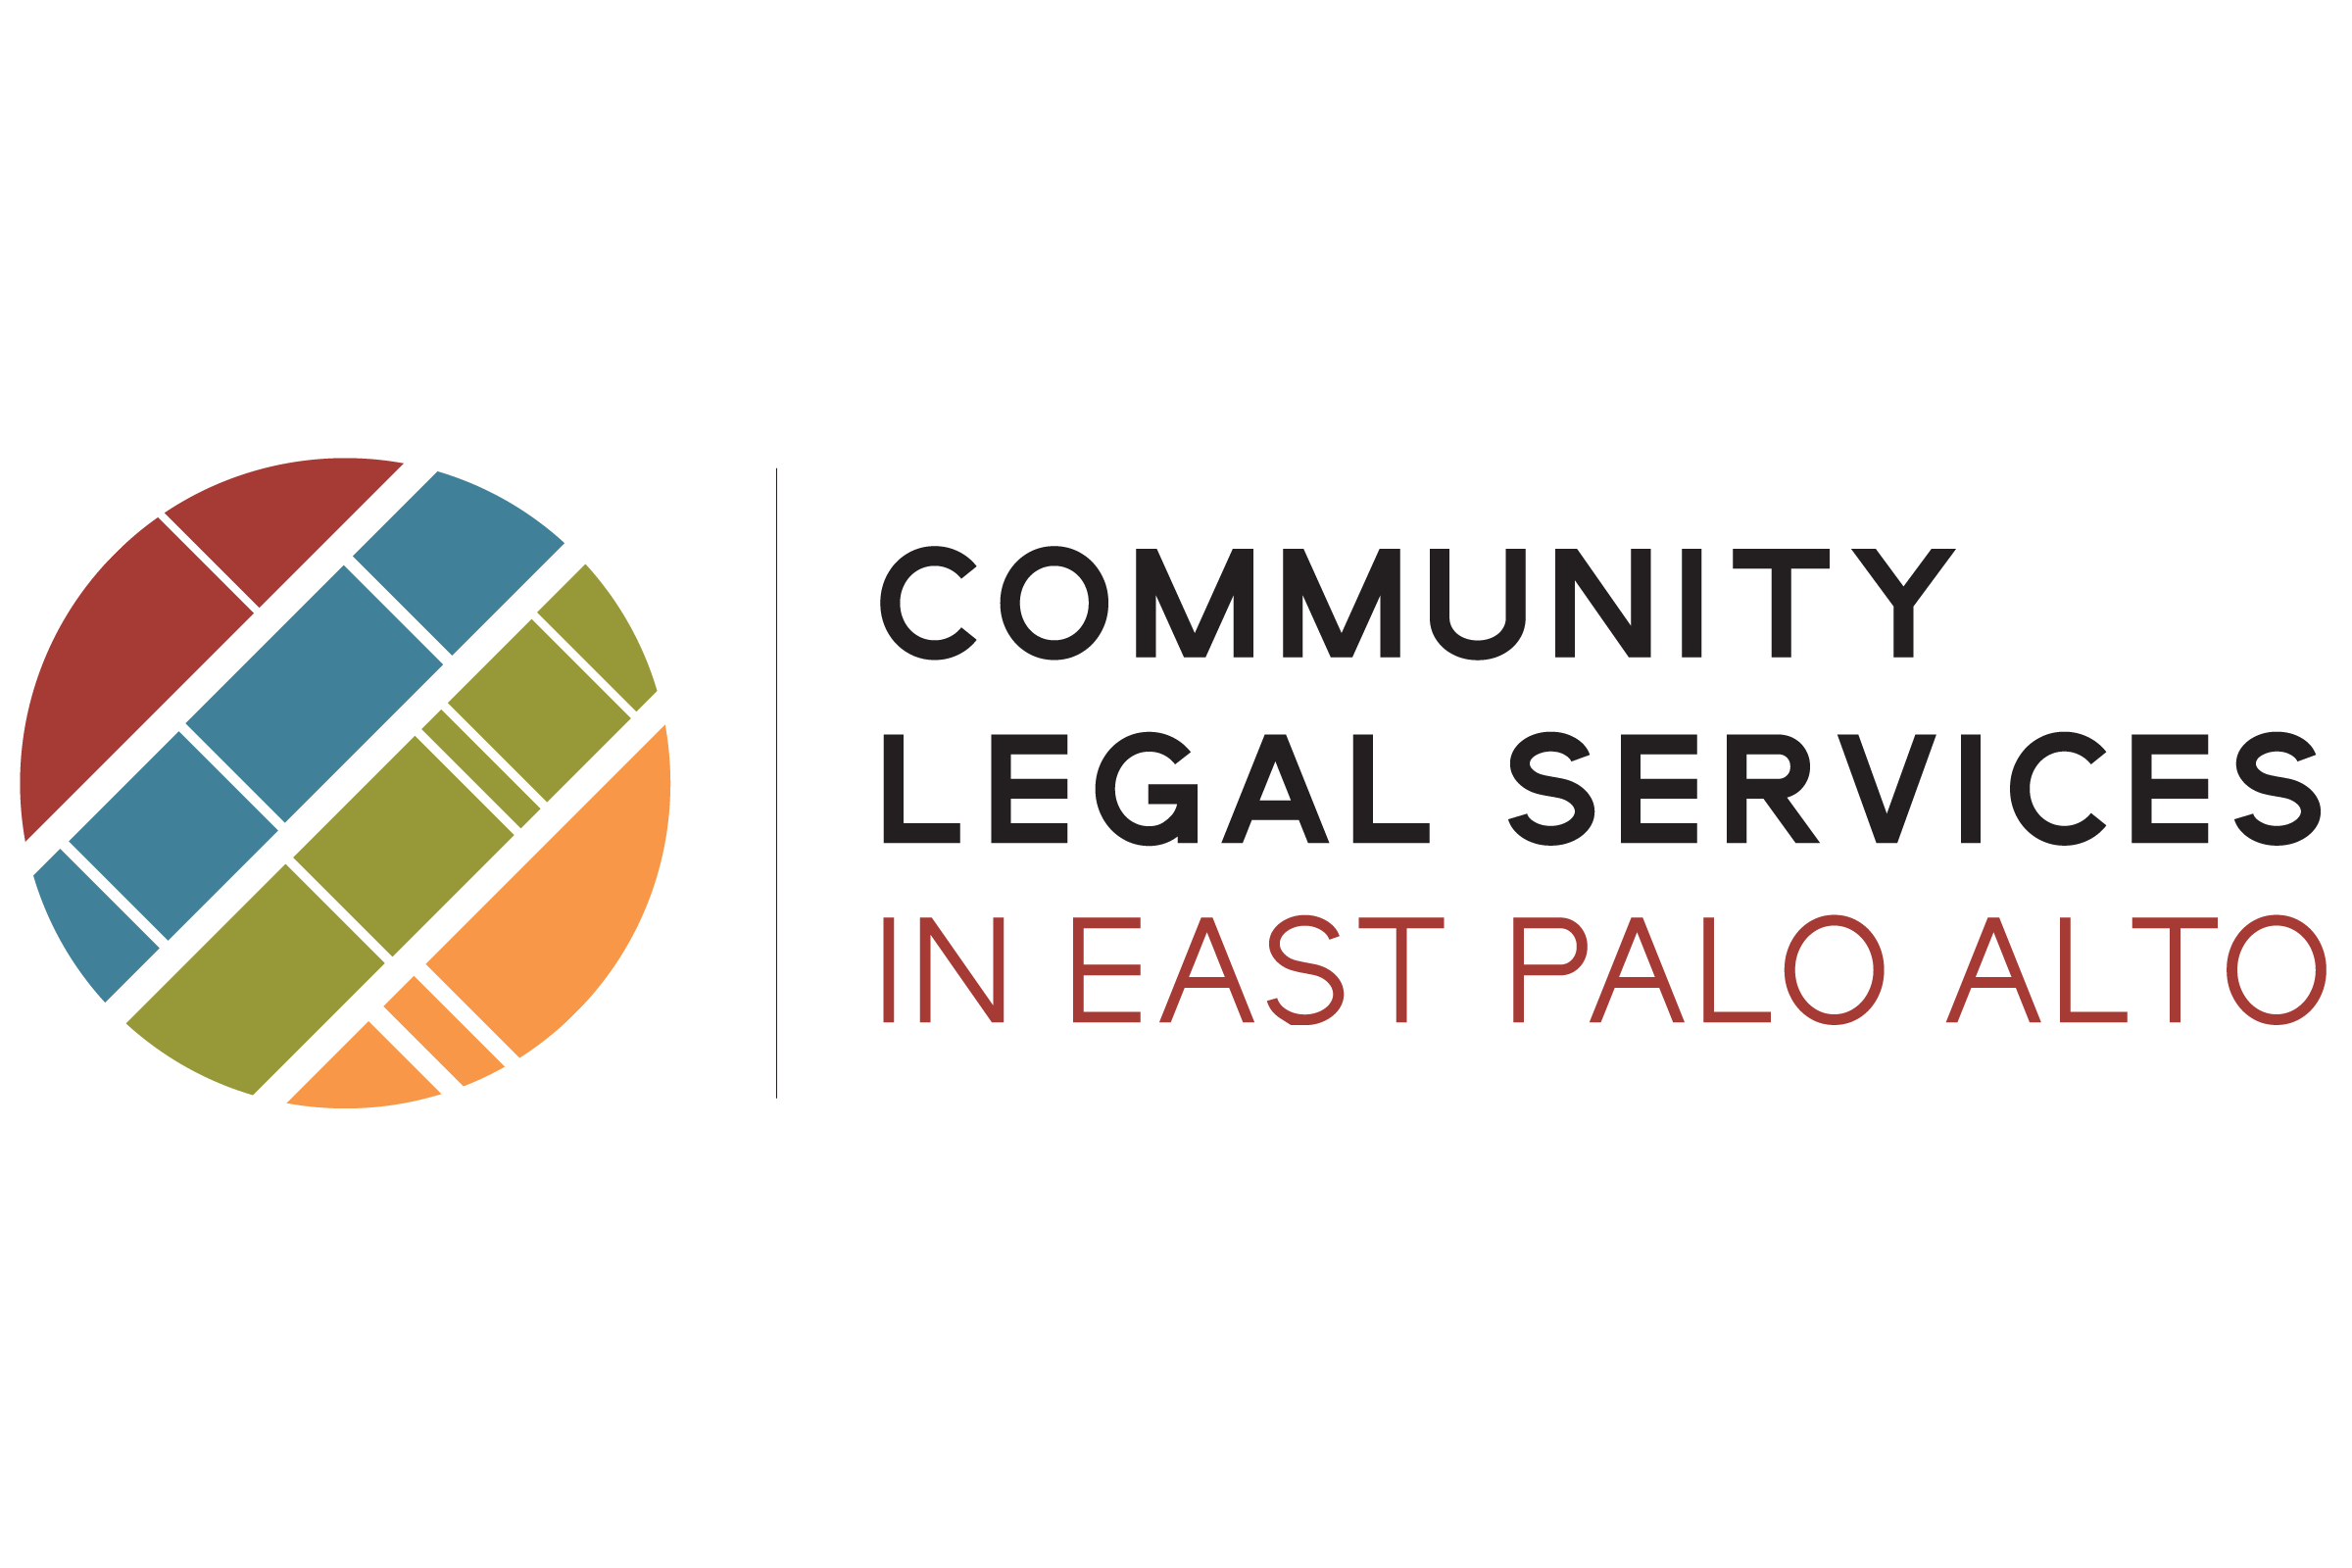 Community Legal Services in East Palo Alto